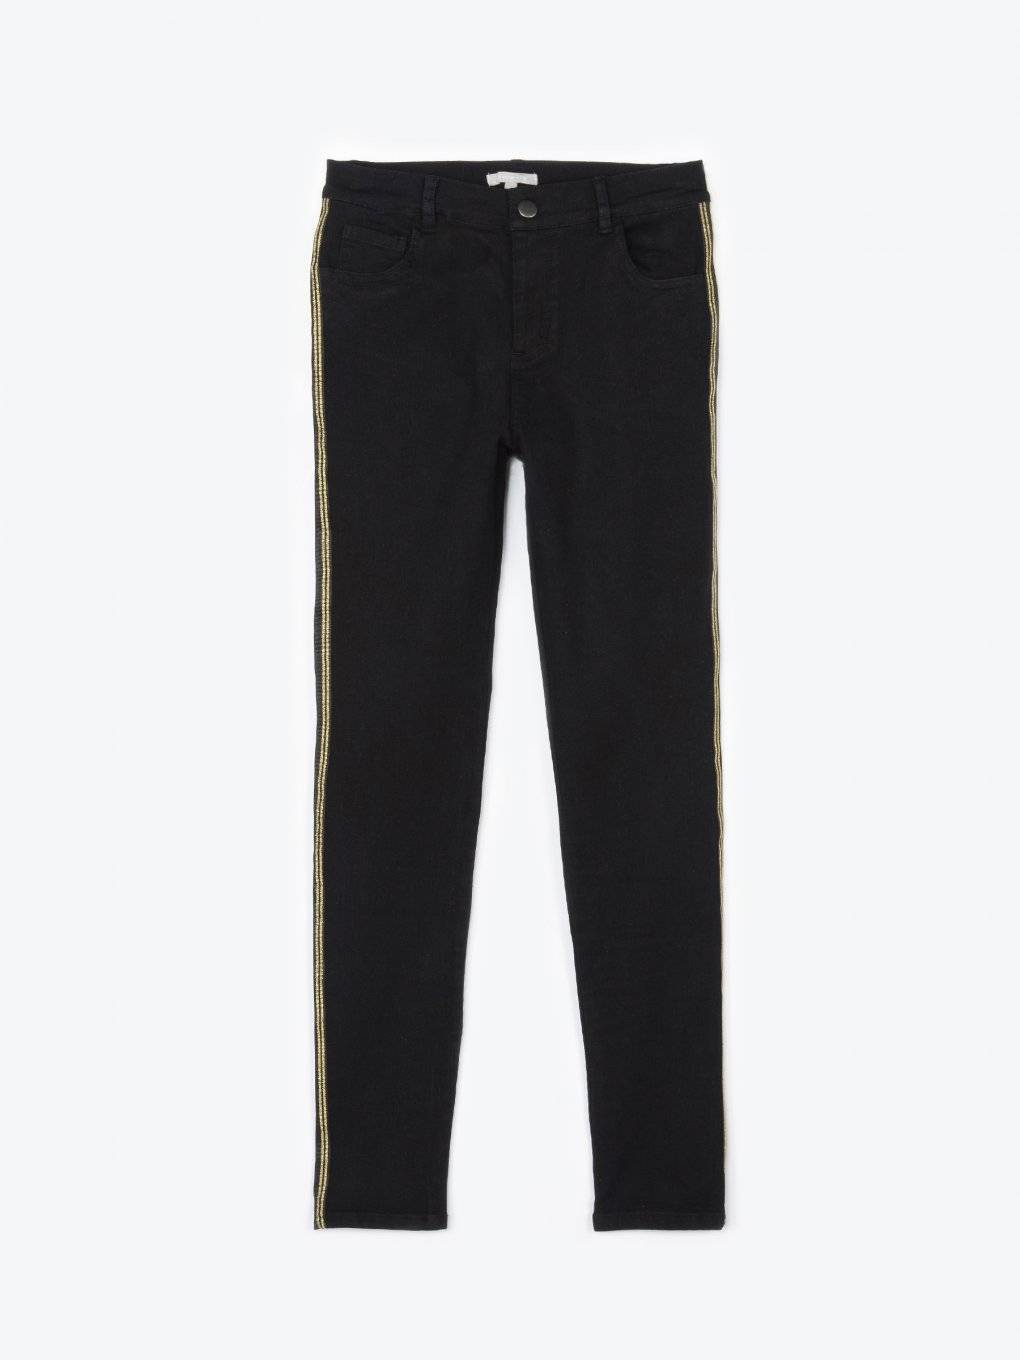 Skinny trousers with gold side tape